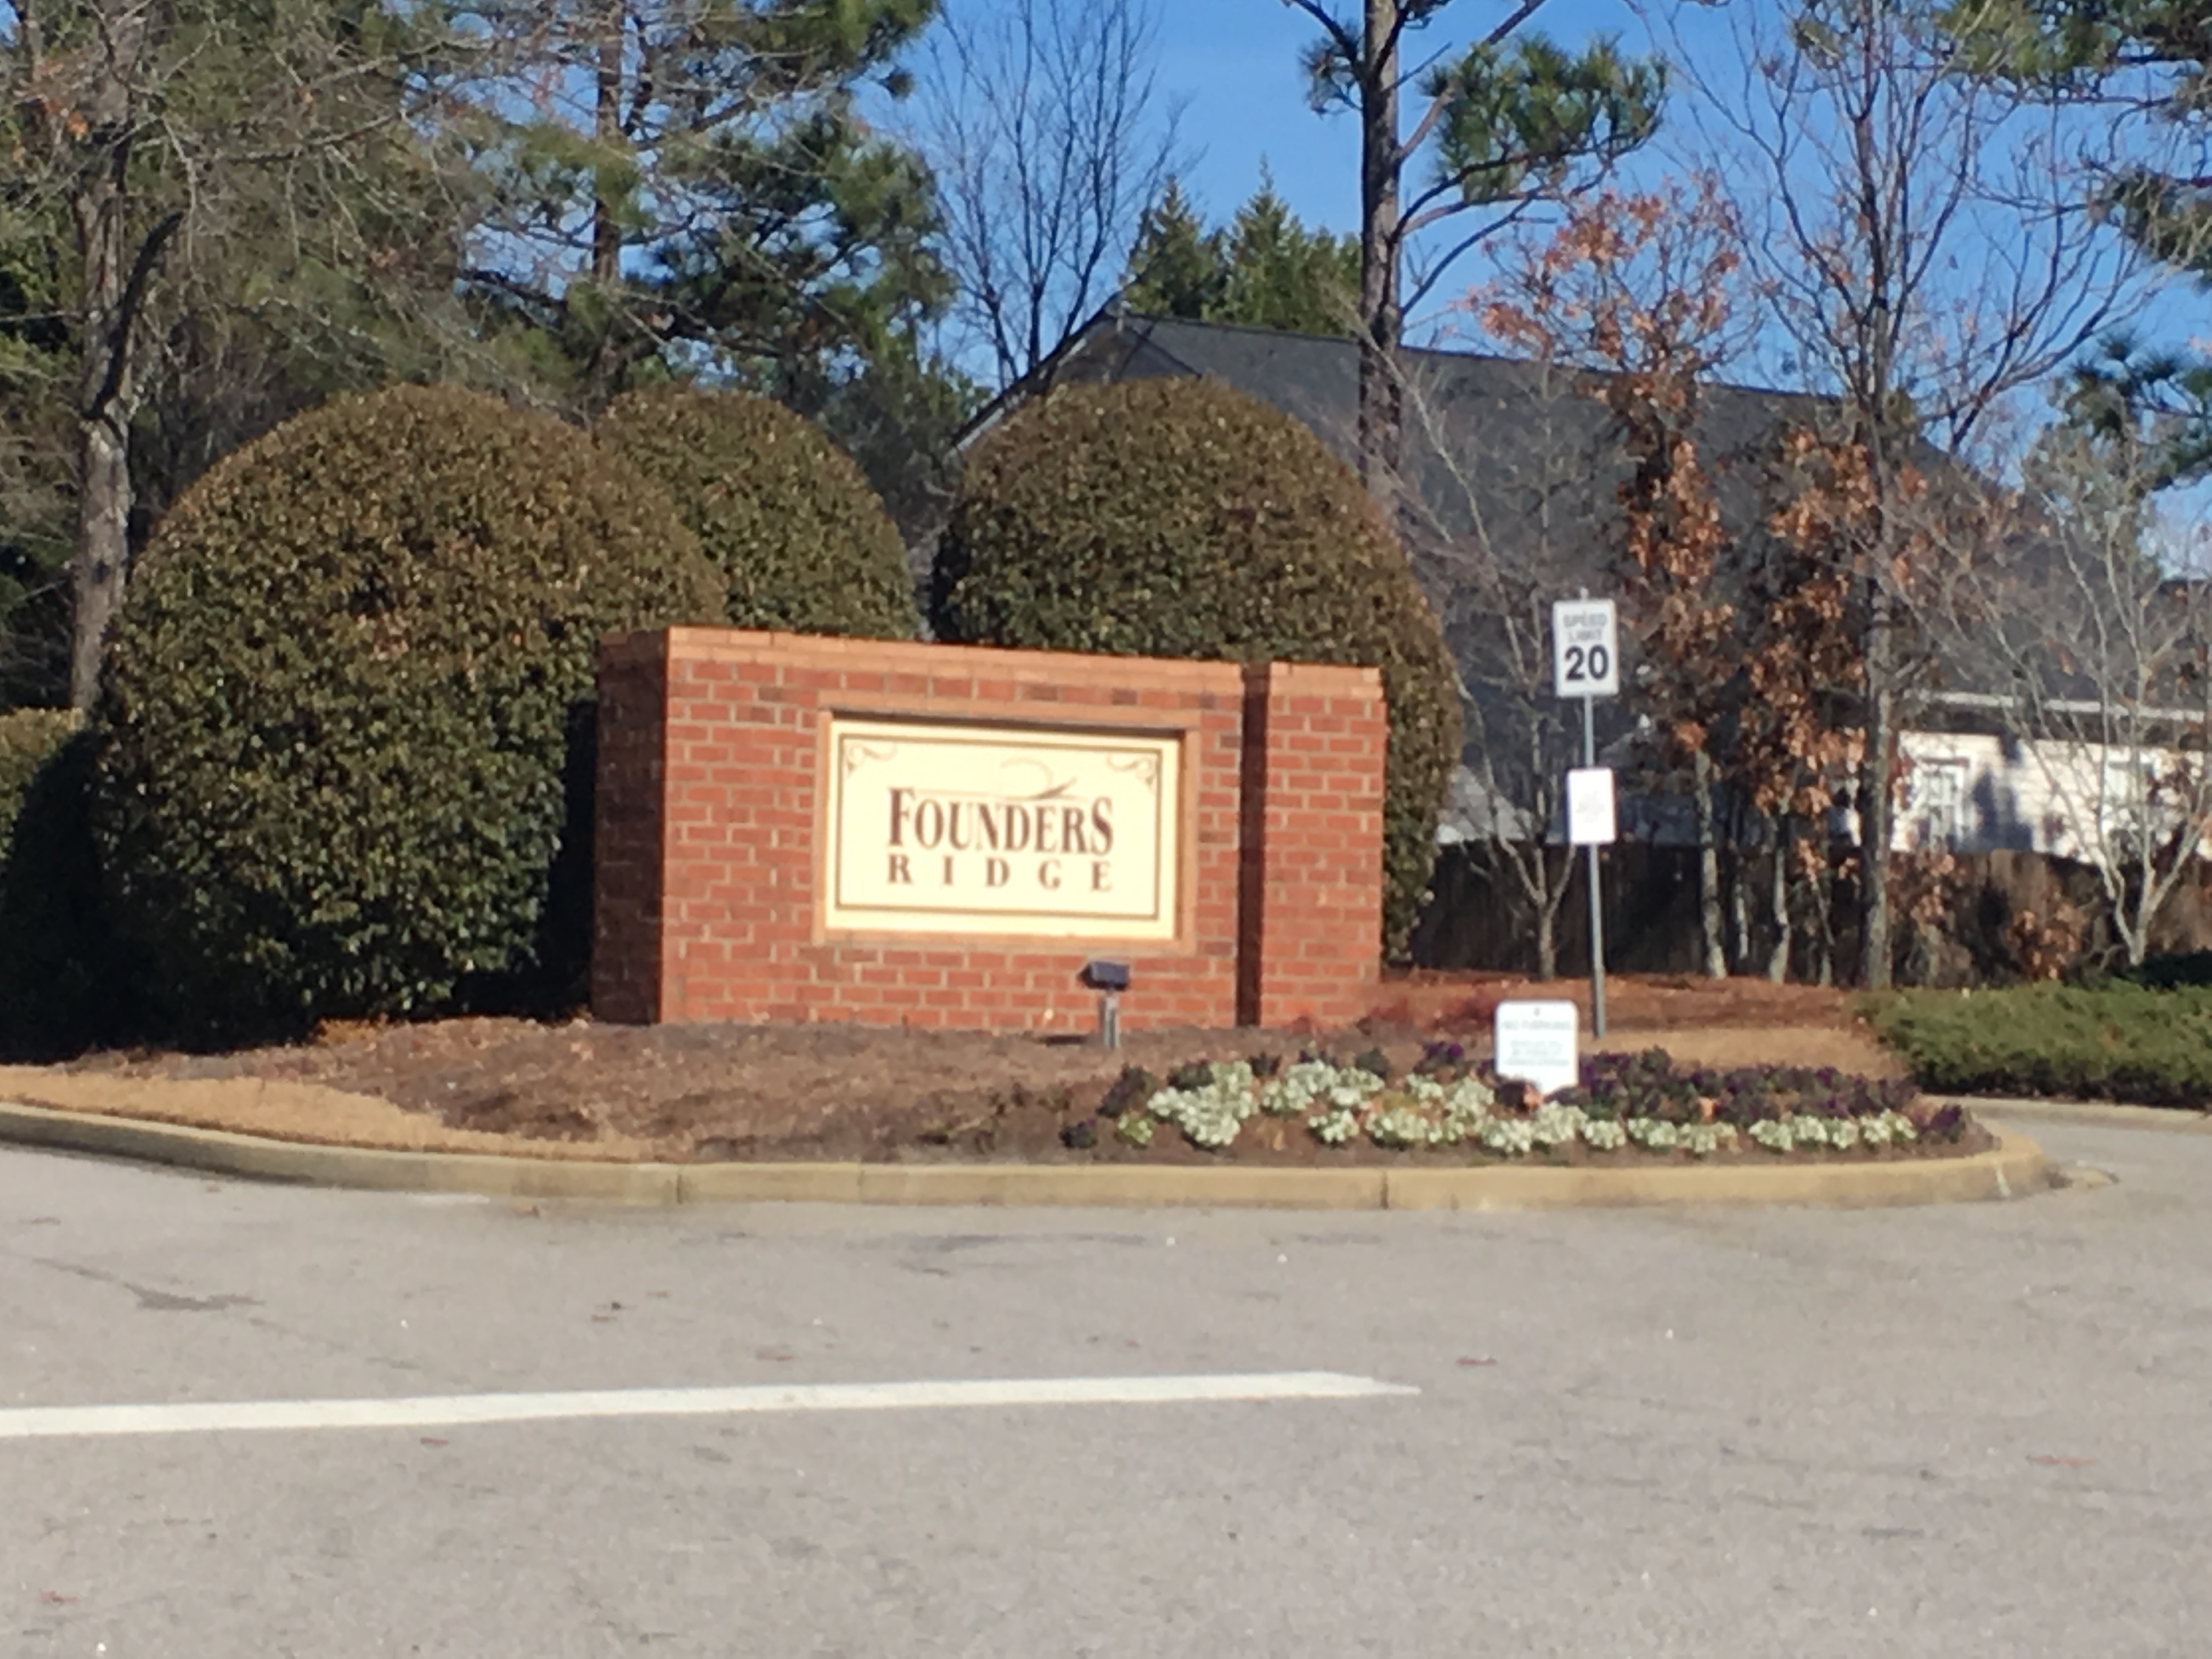 Columbia, SC Homes for Sale in the Summit Founders Ridge